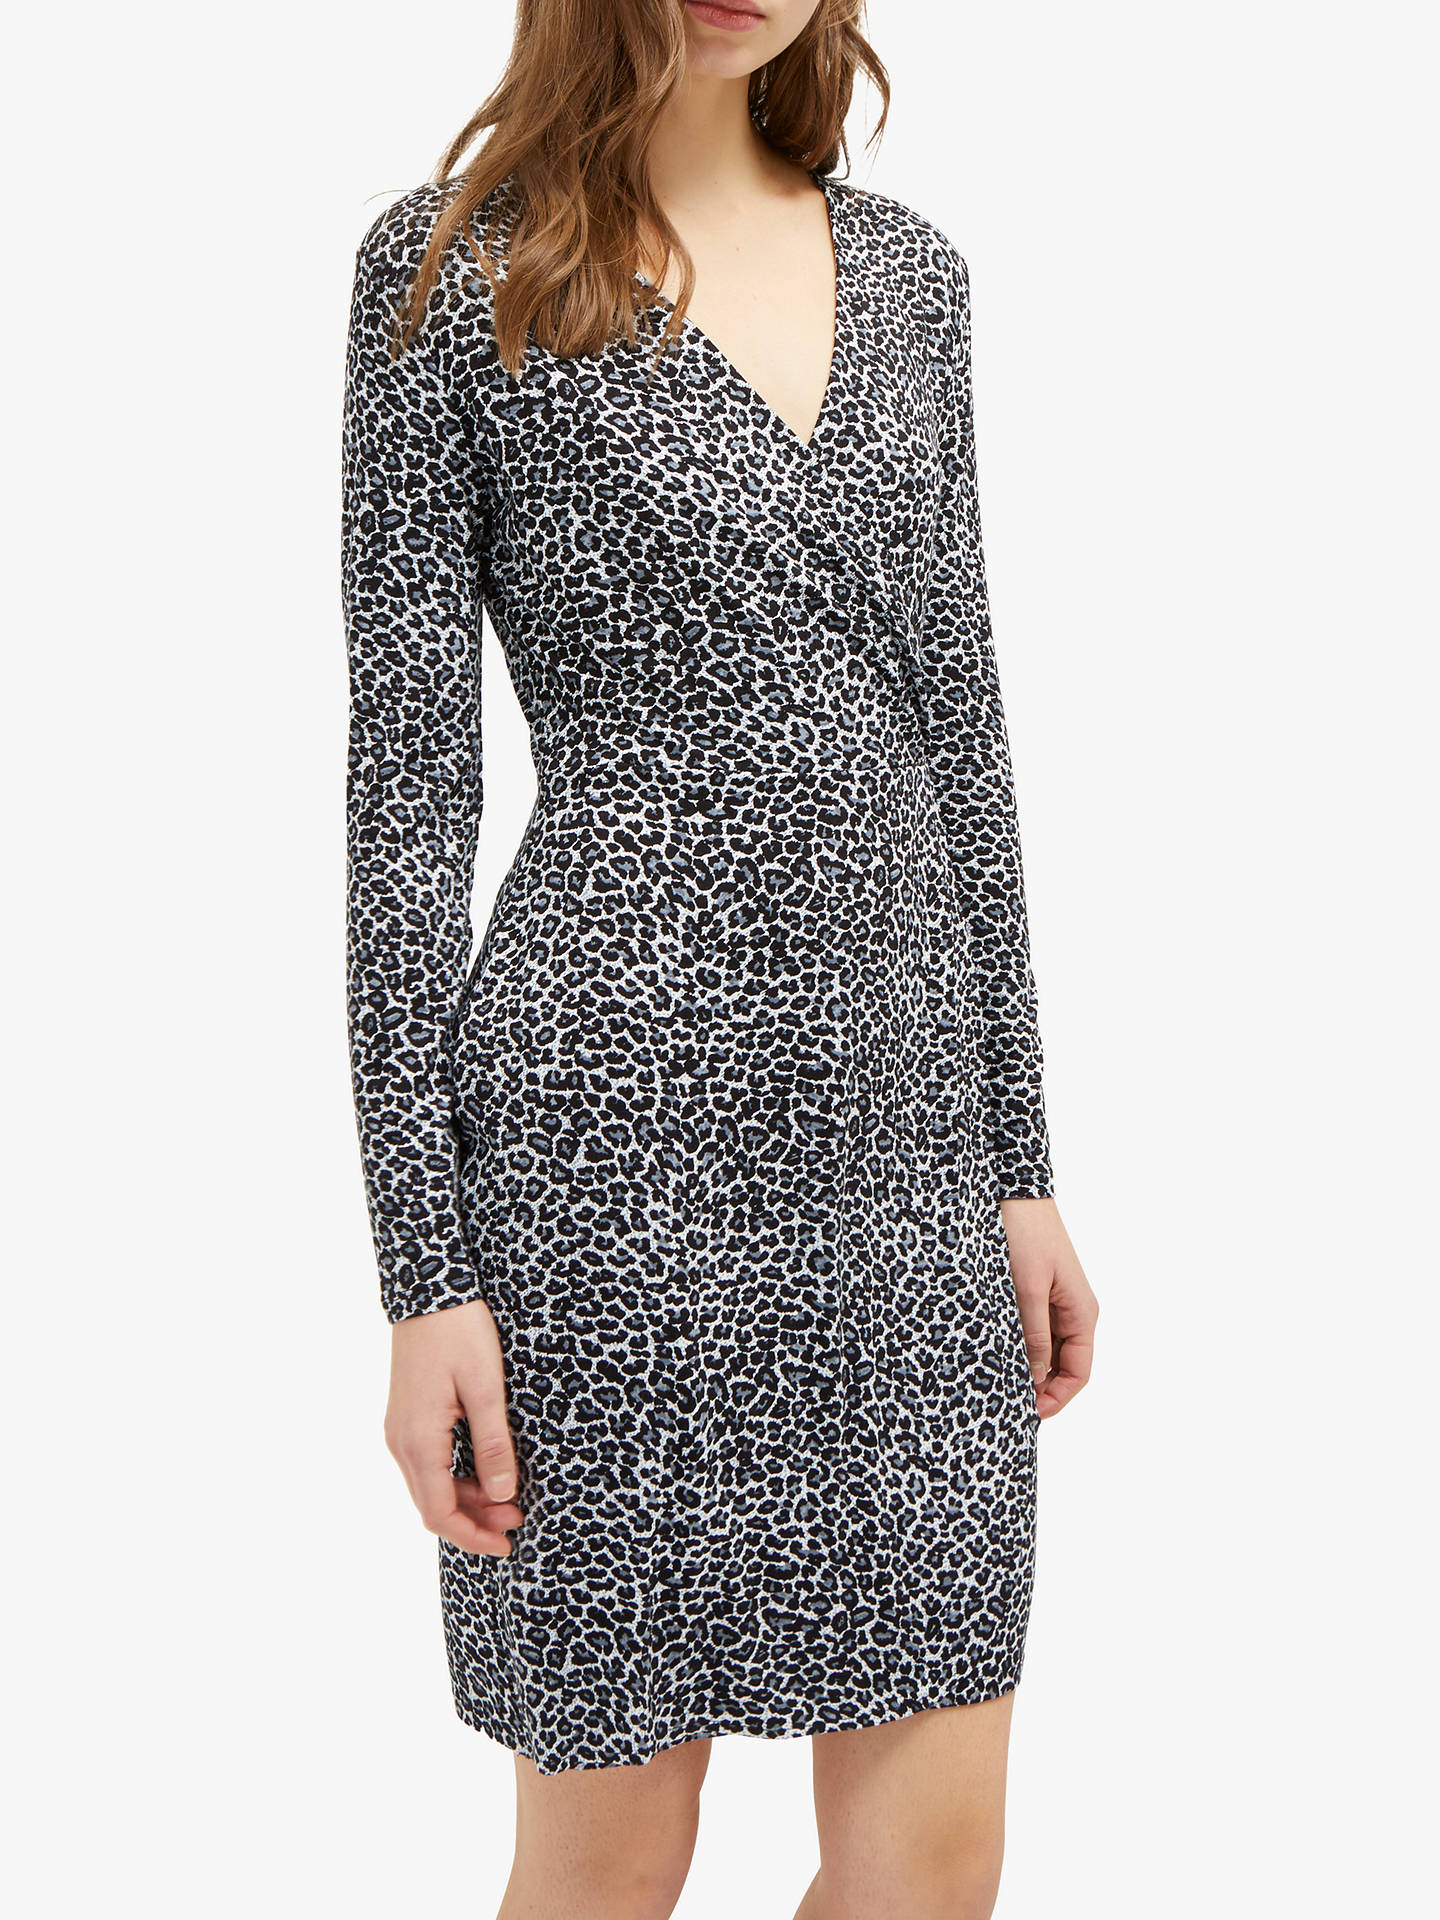 Buy French Connection Leopard Frill Neck Dress, Grey/Leopard, 14 Online at johnlewis.com